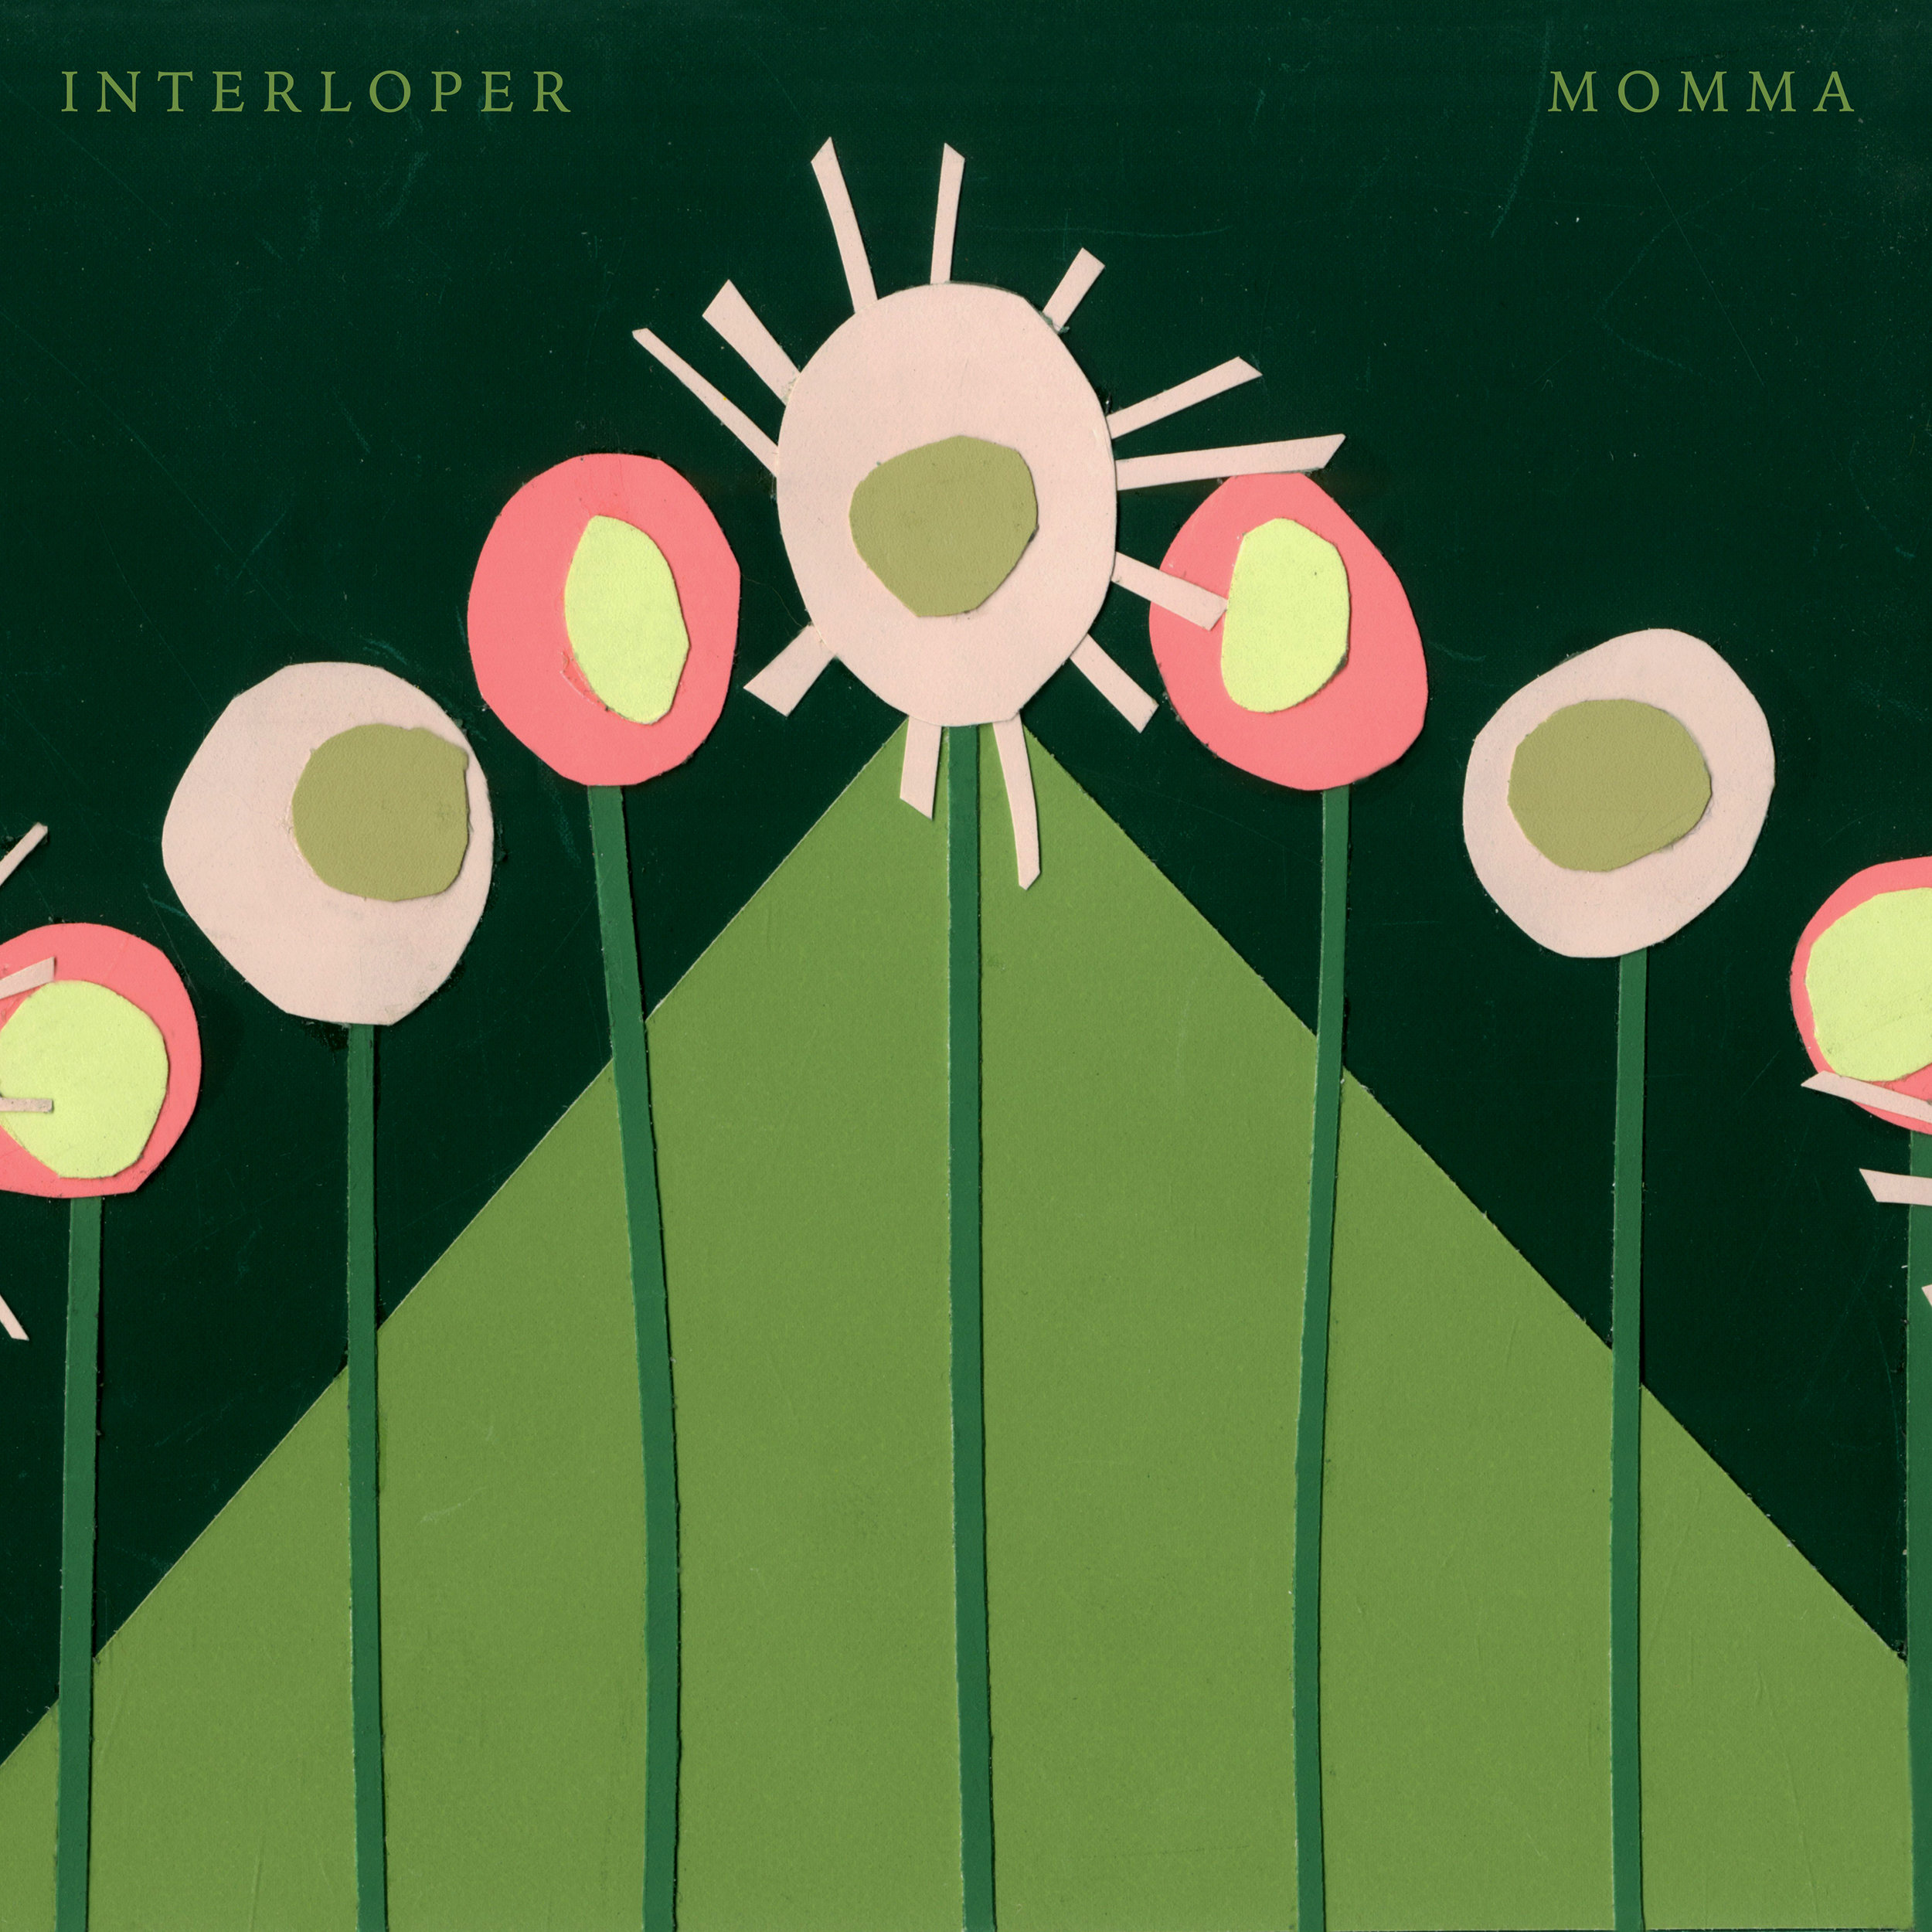 Momma - Interloper